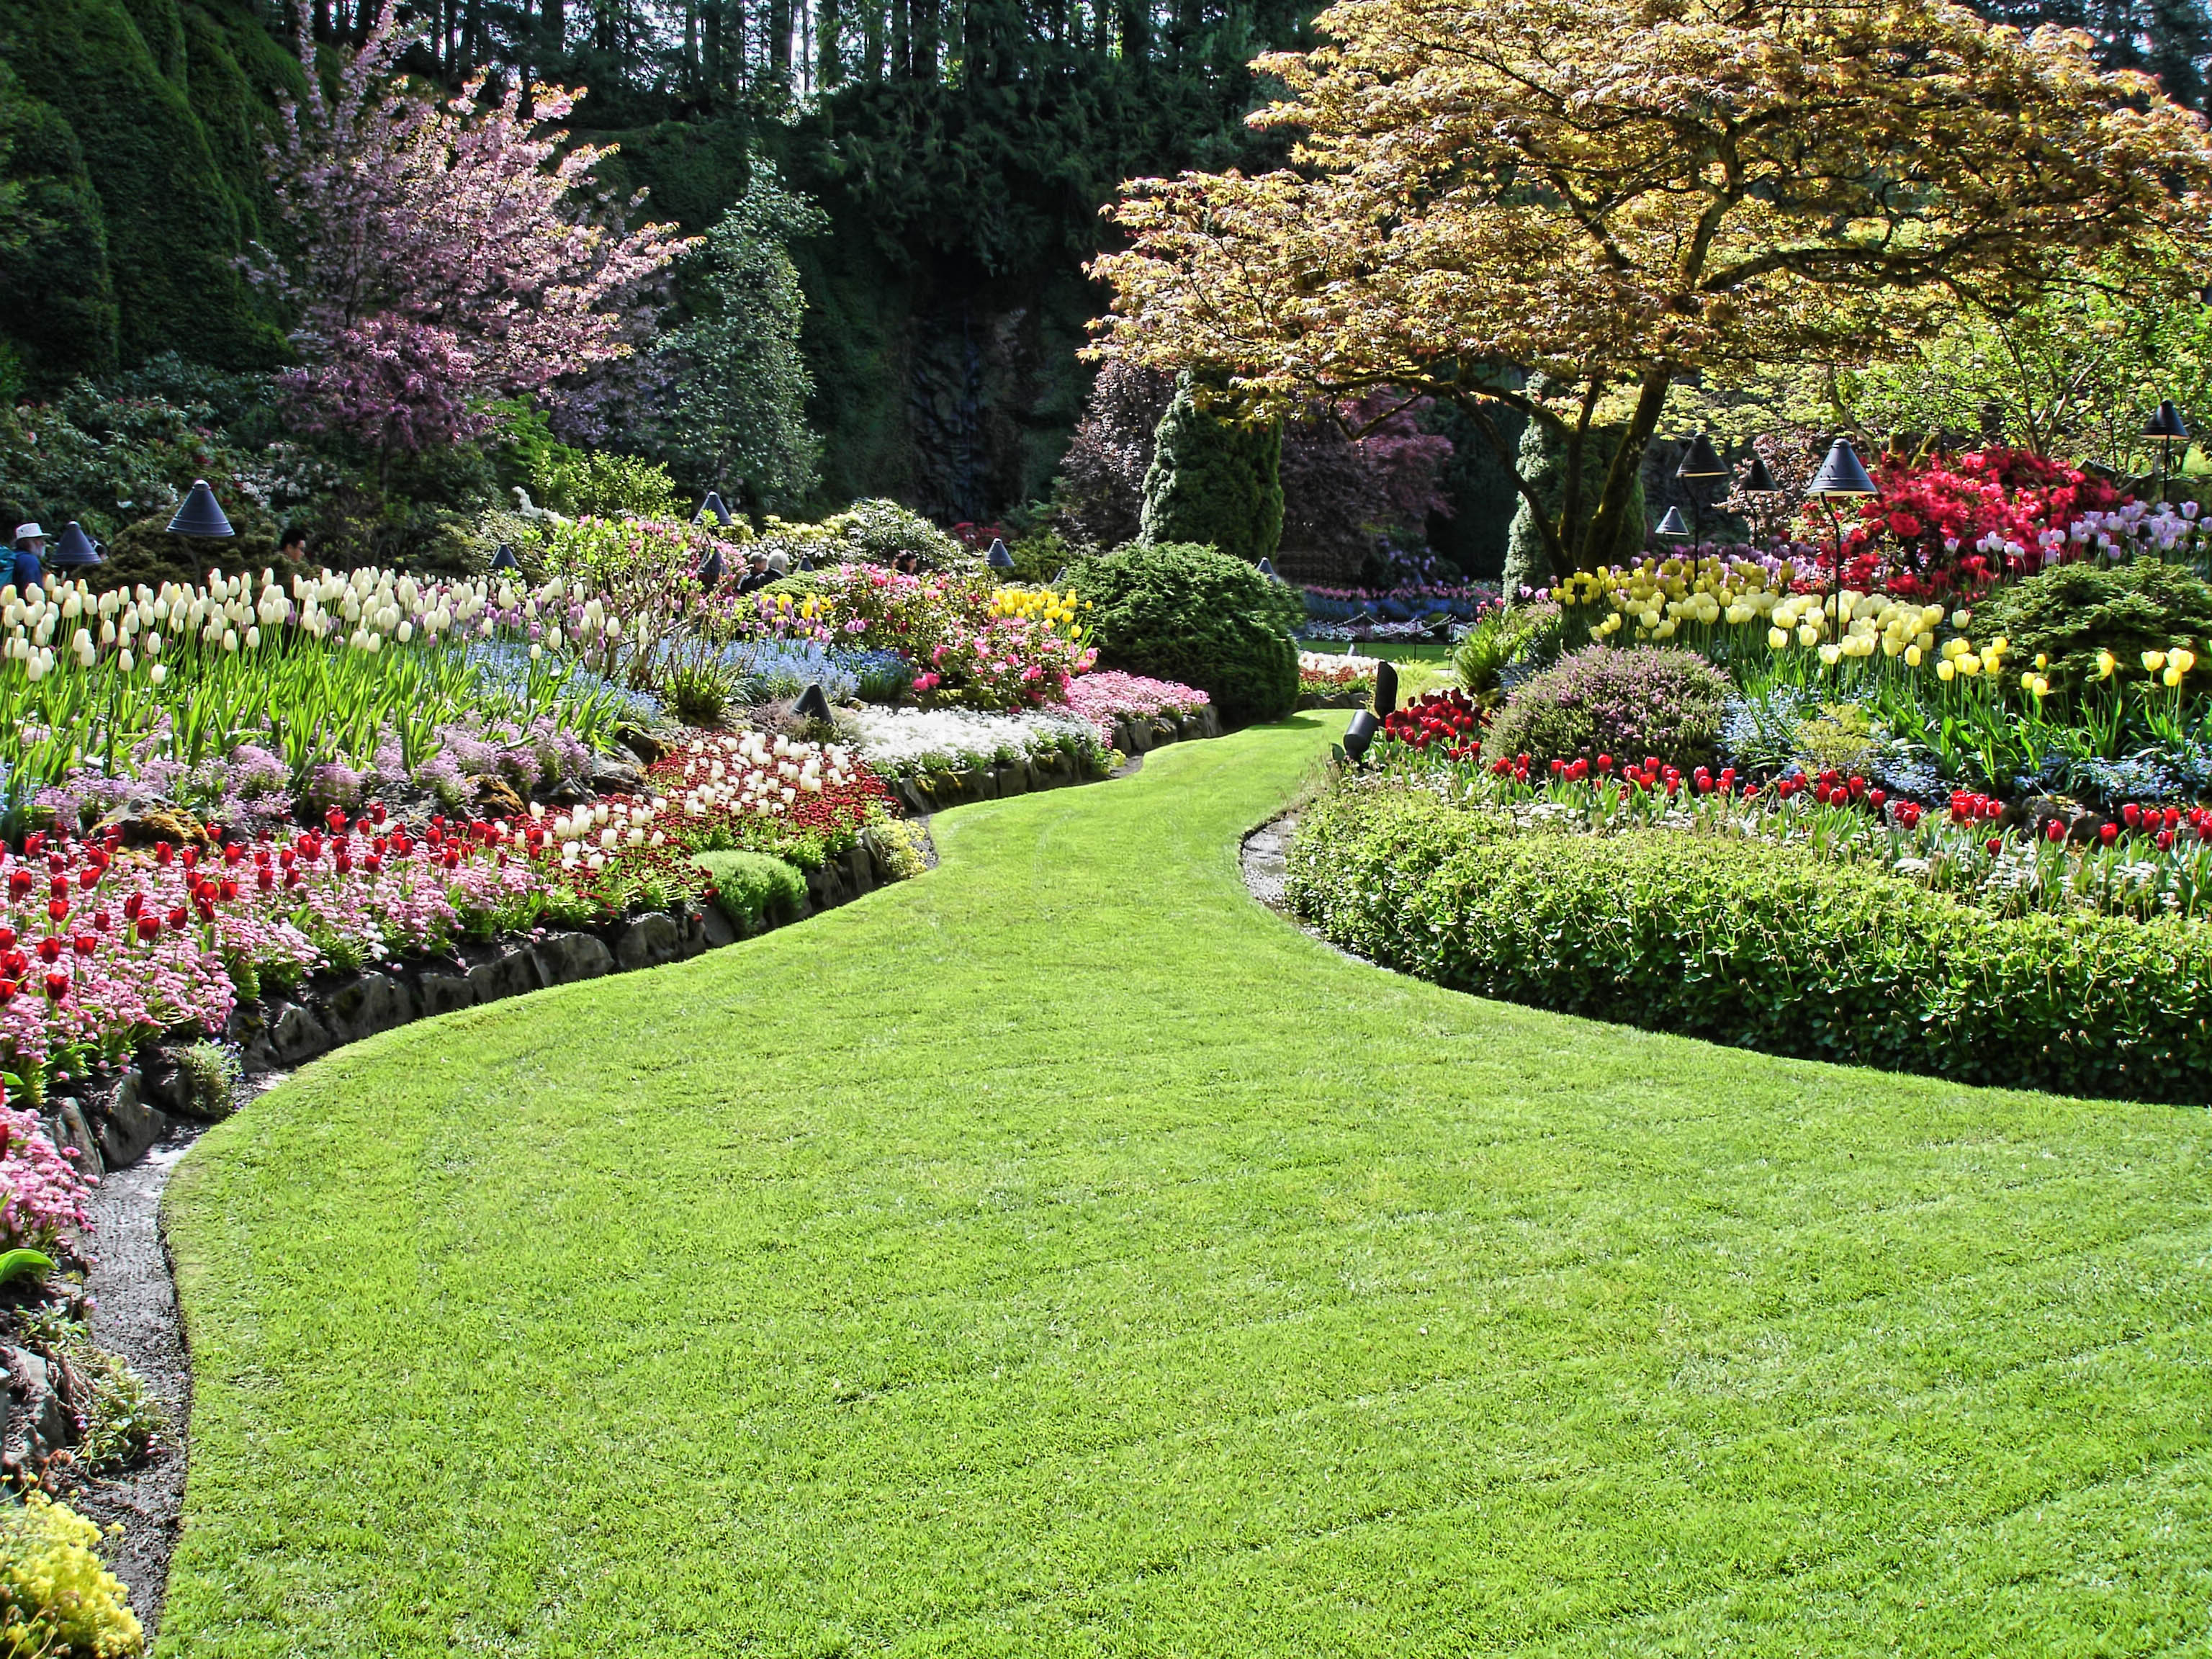 Divine Small Landscaped Front Yards S Small Yards Landscaped Why Contract A Landscaping Why Contract A Landscaping Night Helper S outdoor Pictures Of Yards Landscaped